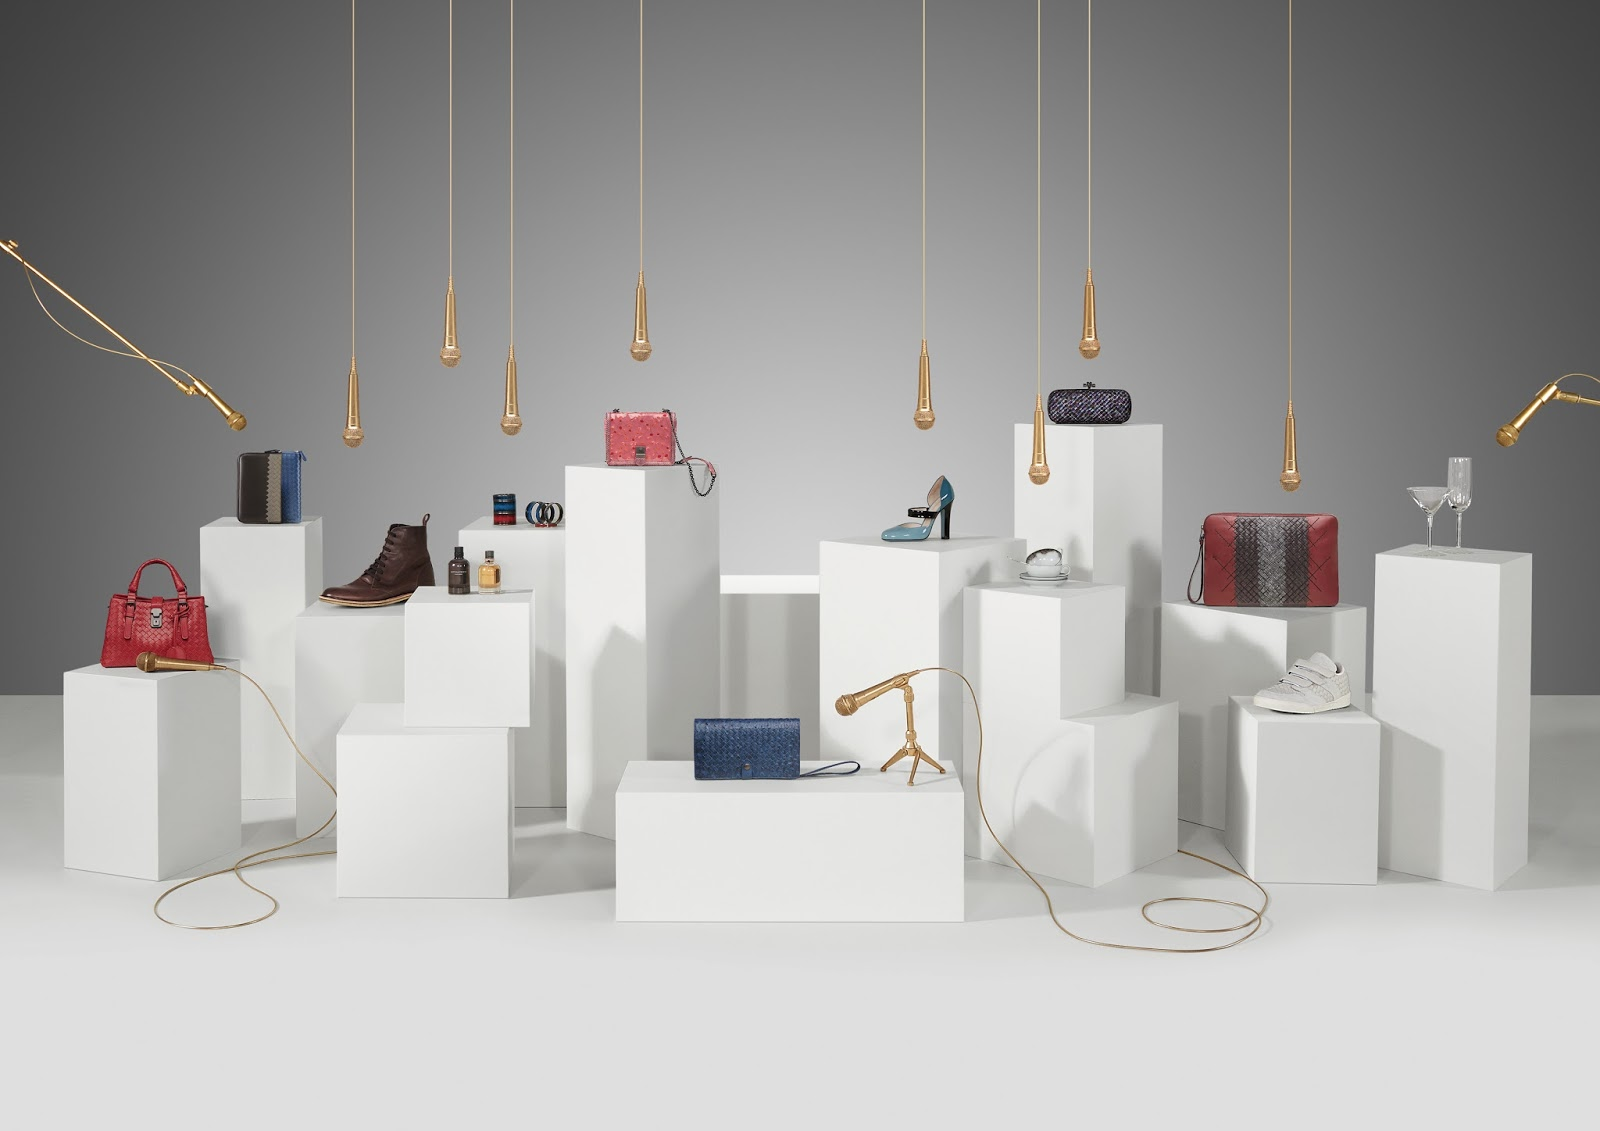 Bottega Veneta's Holiday Video